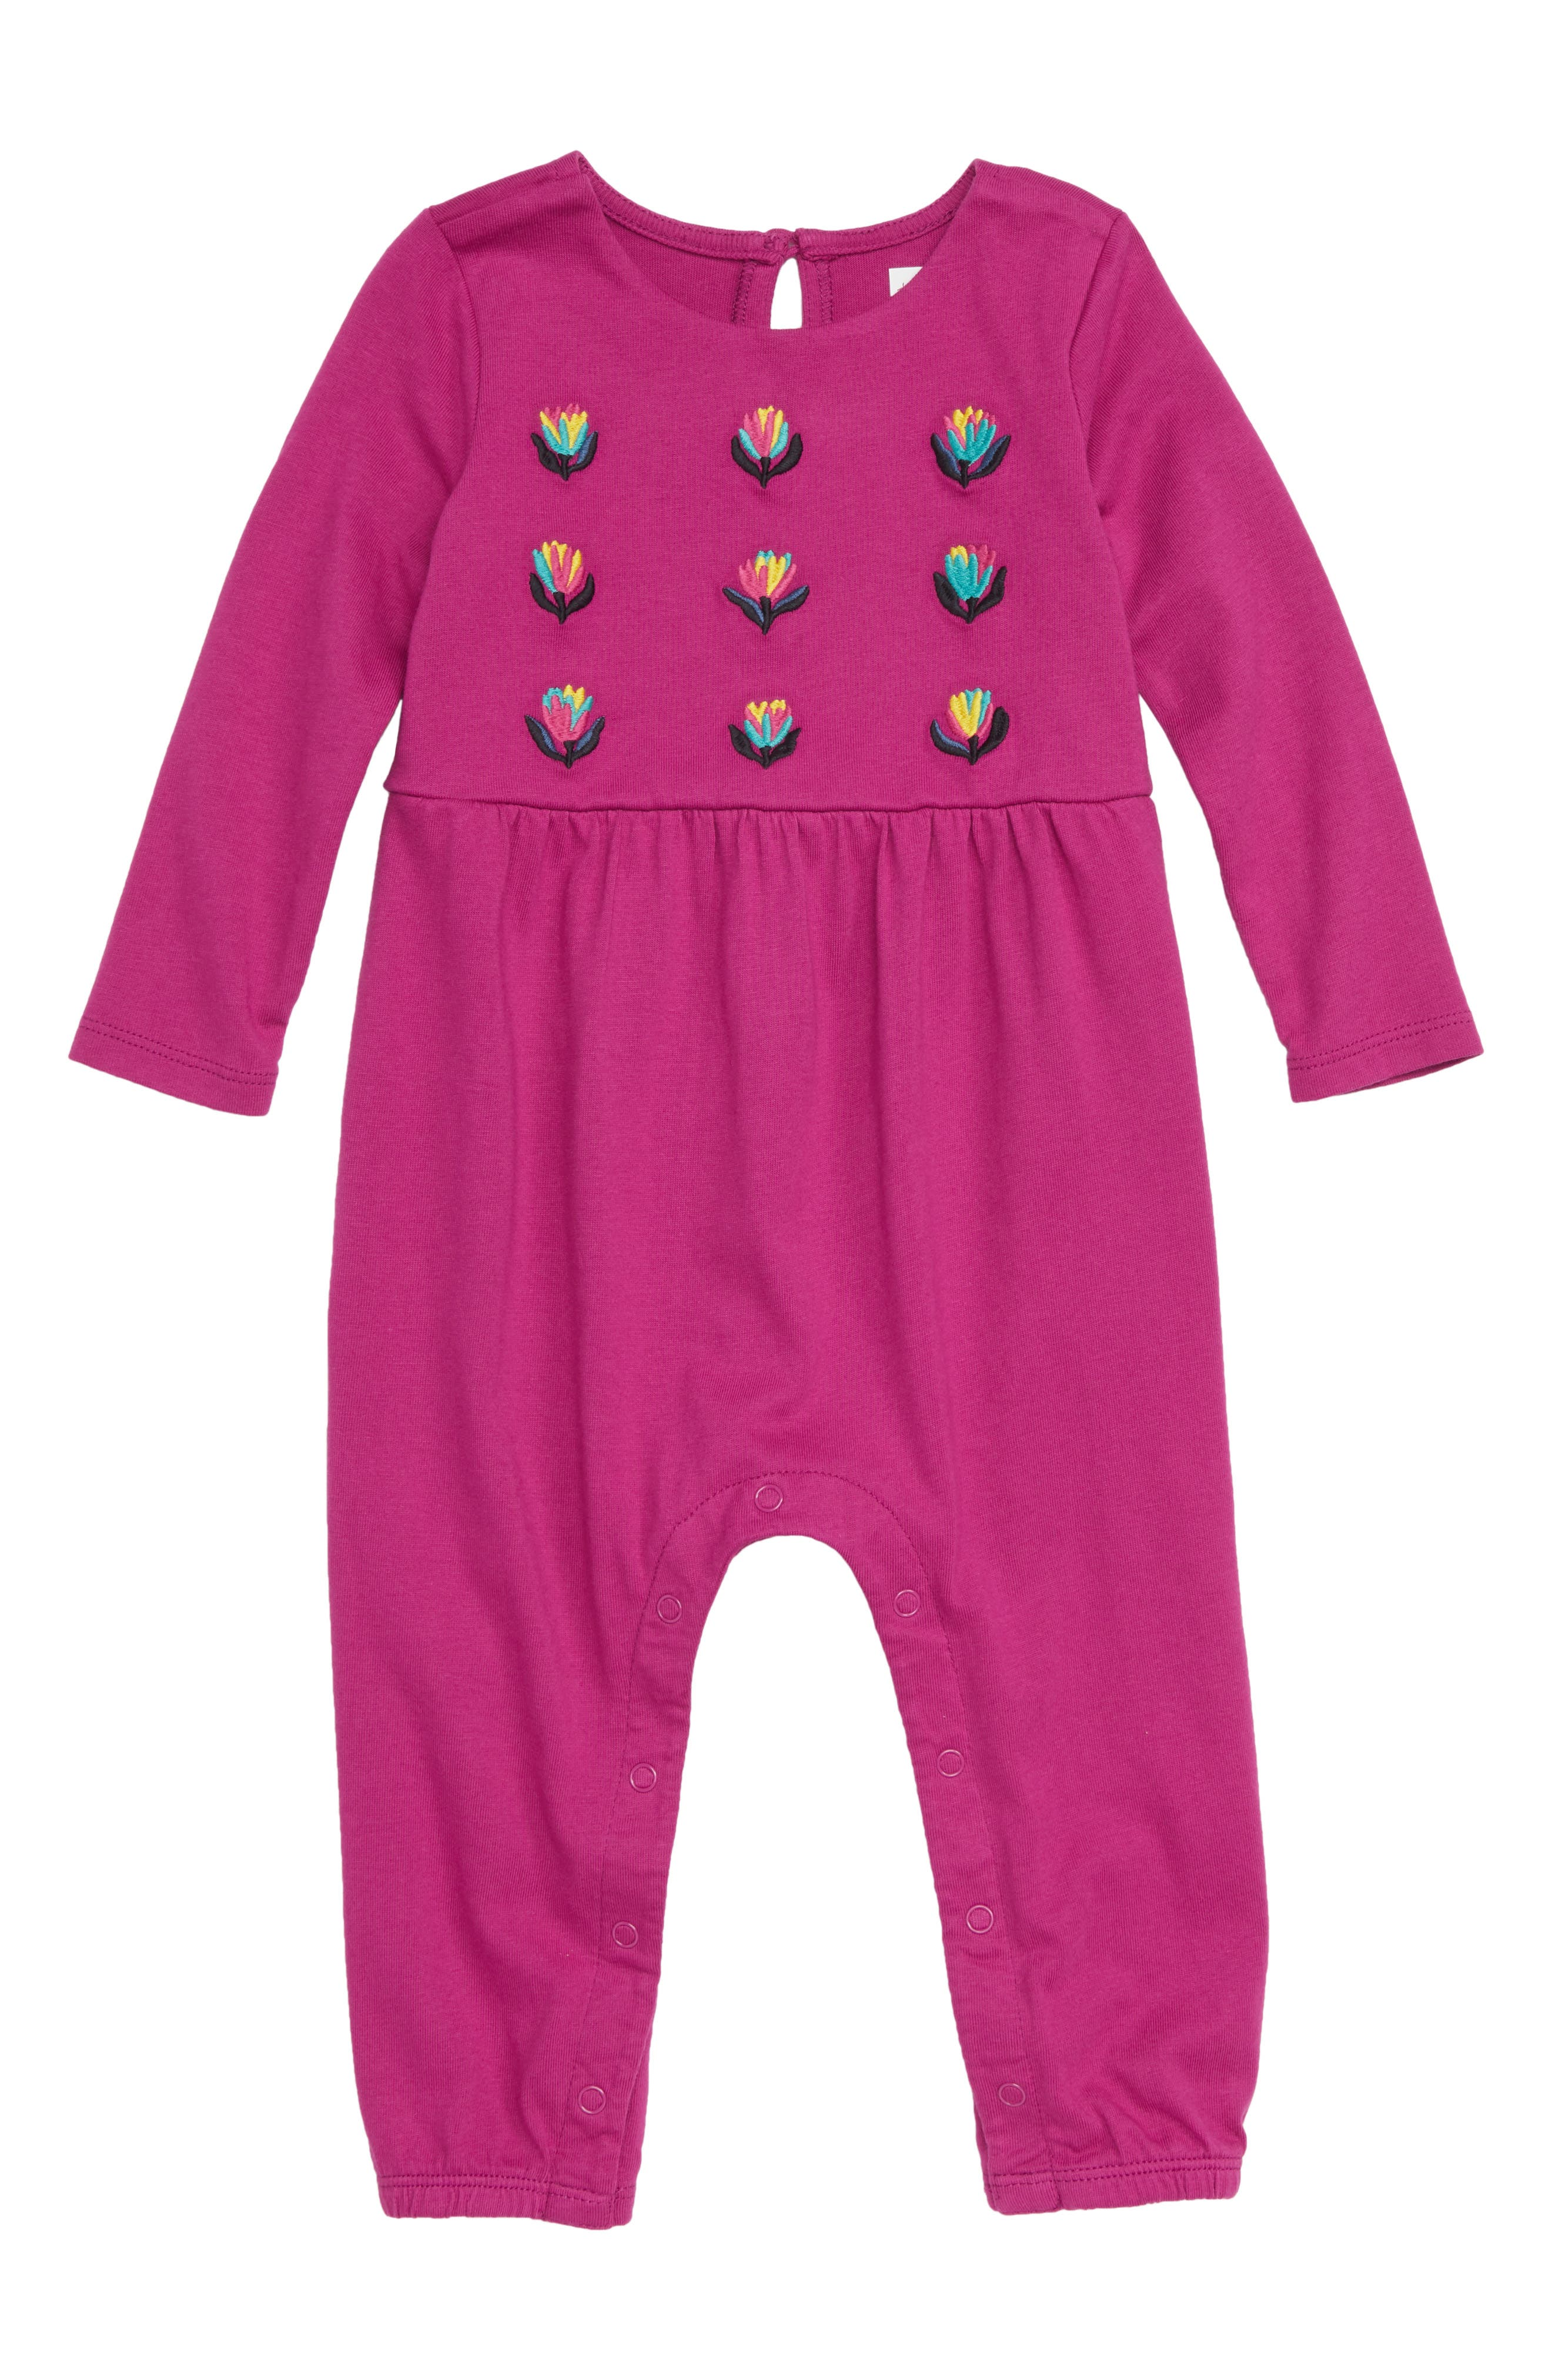 Blooming Embroidered Romper,                             Main thumbnail 1, color,                             693